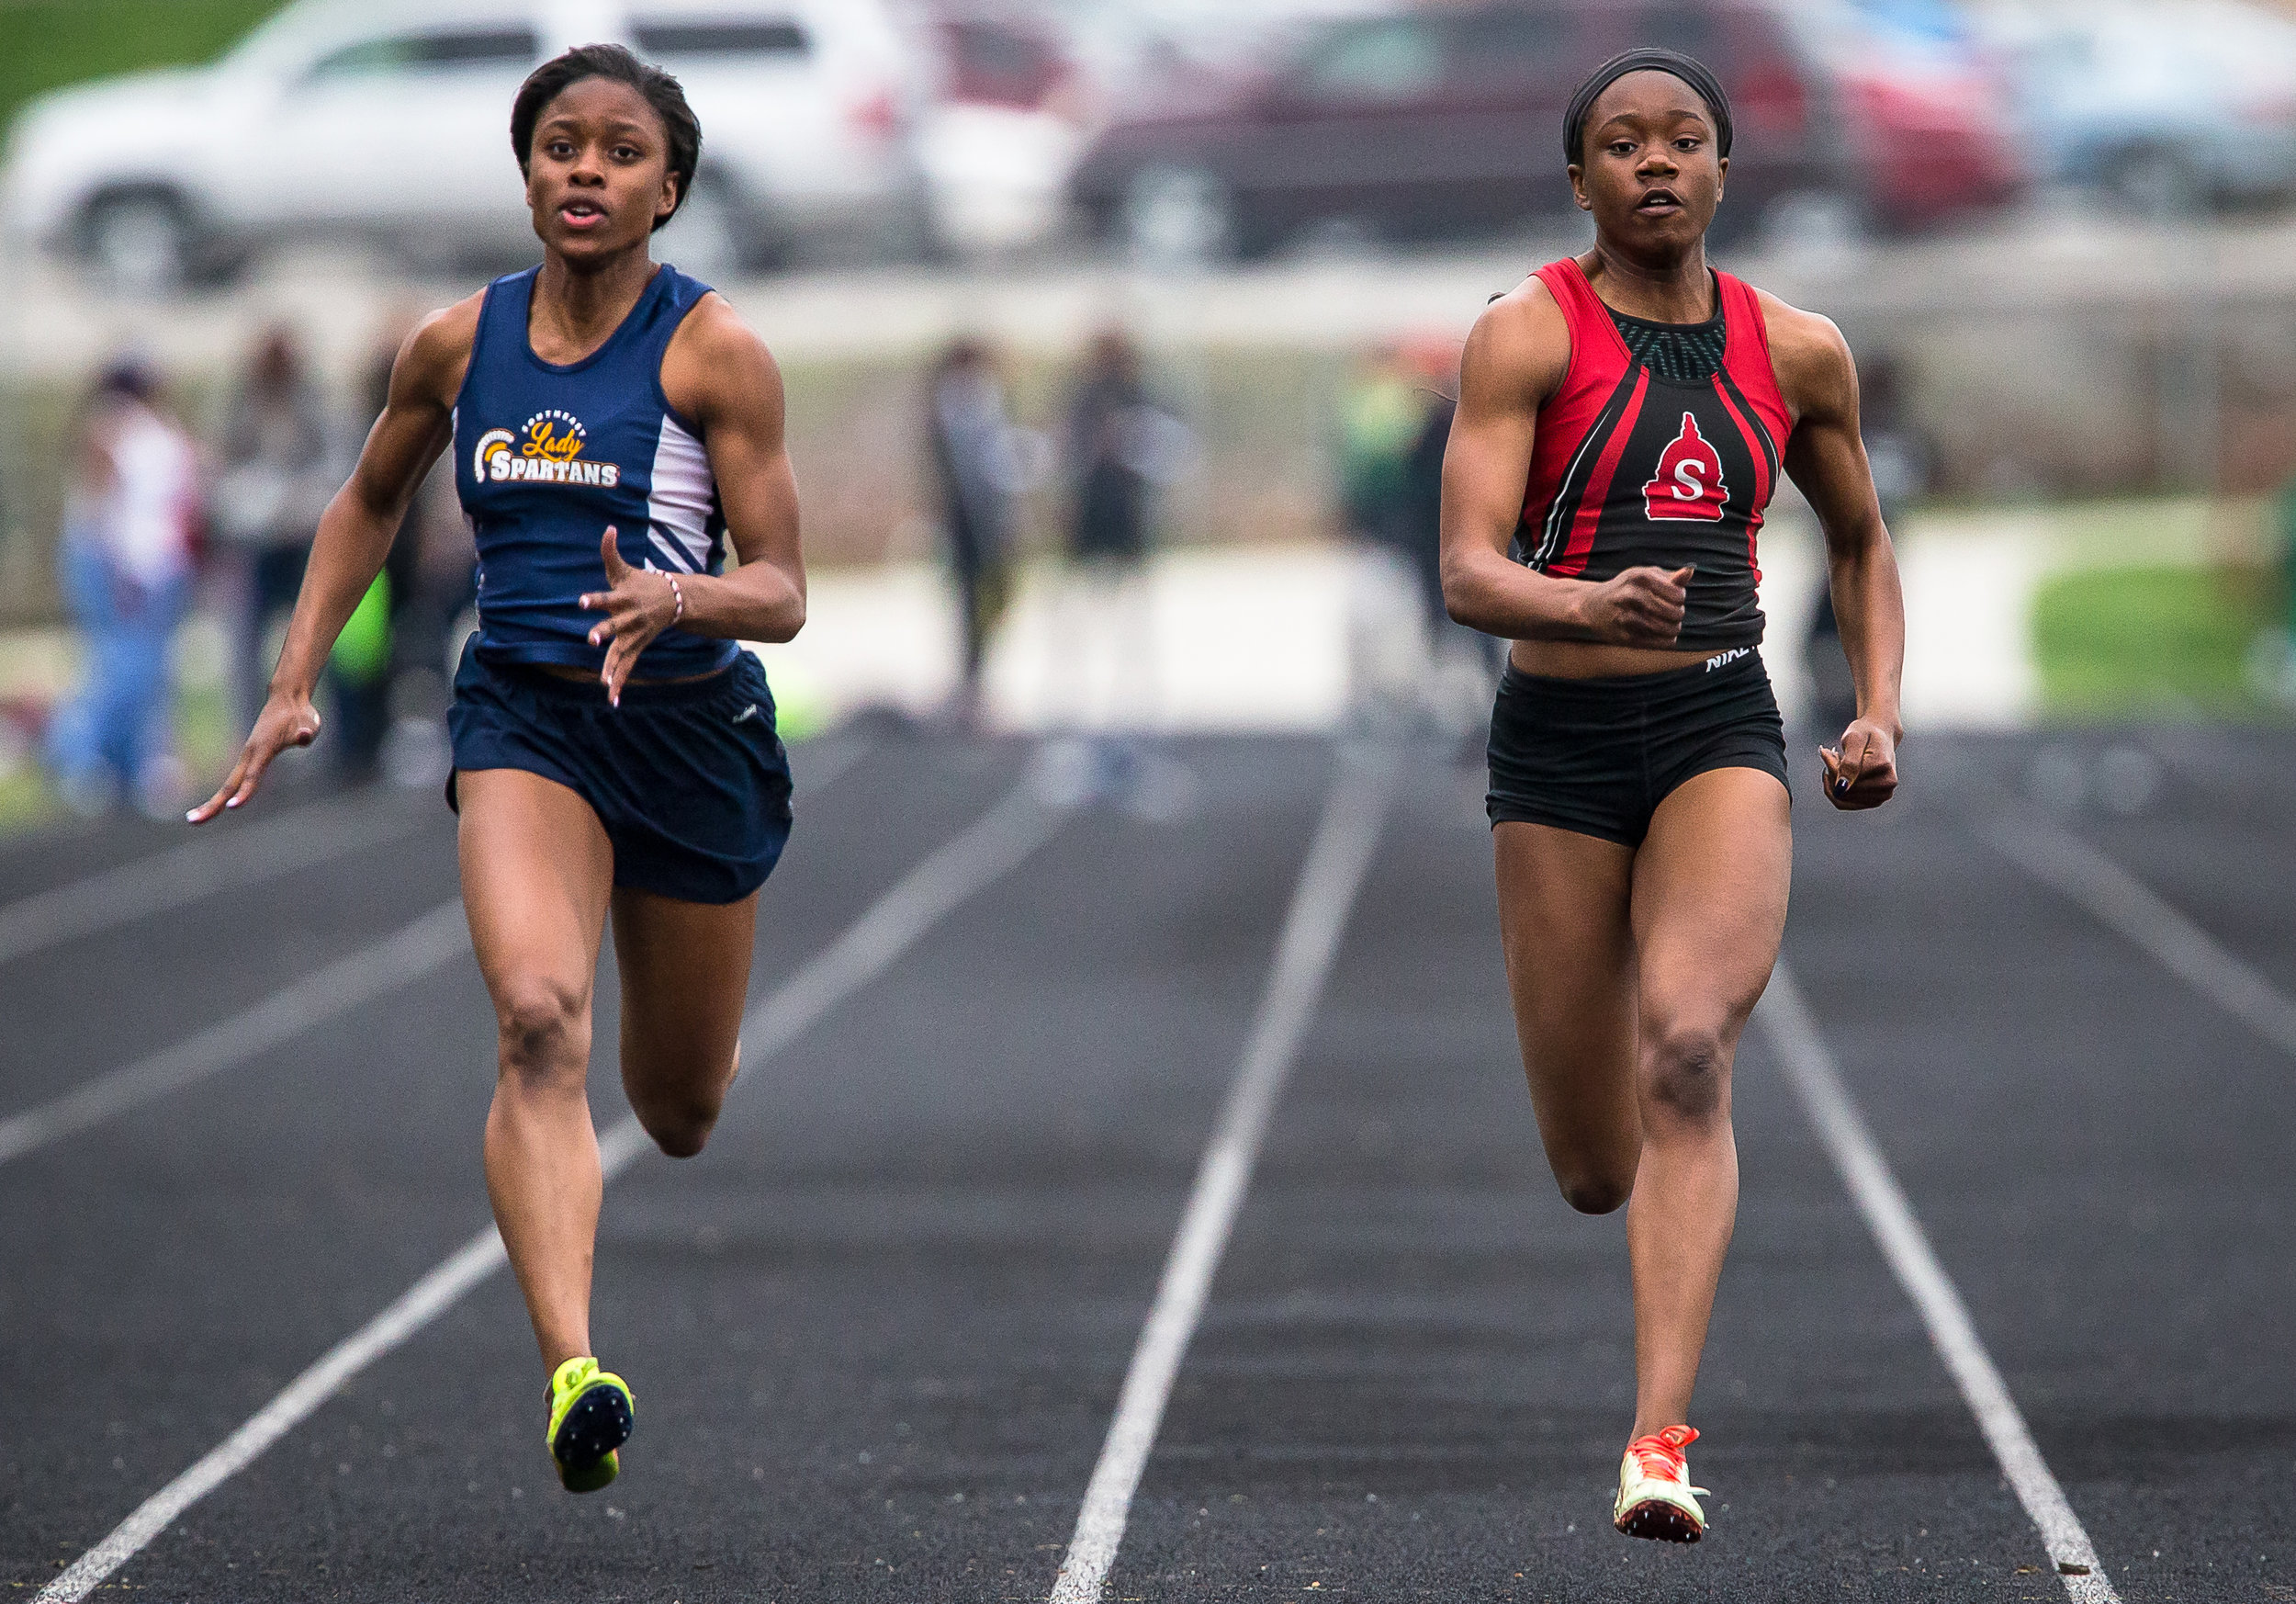 Springfield's Ozzy Erewele, right, wins the 100m Dash over Southeast's Serena Bolden, left, setting a new meet record with a time of 11.78 seconds during the Girls CS8 Track & Field Meet at Eisenhower High School, Thursday, May 3, 2018, in Springfield, Ill. [Justin L. Fowler/The State Journal-Register]